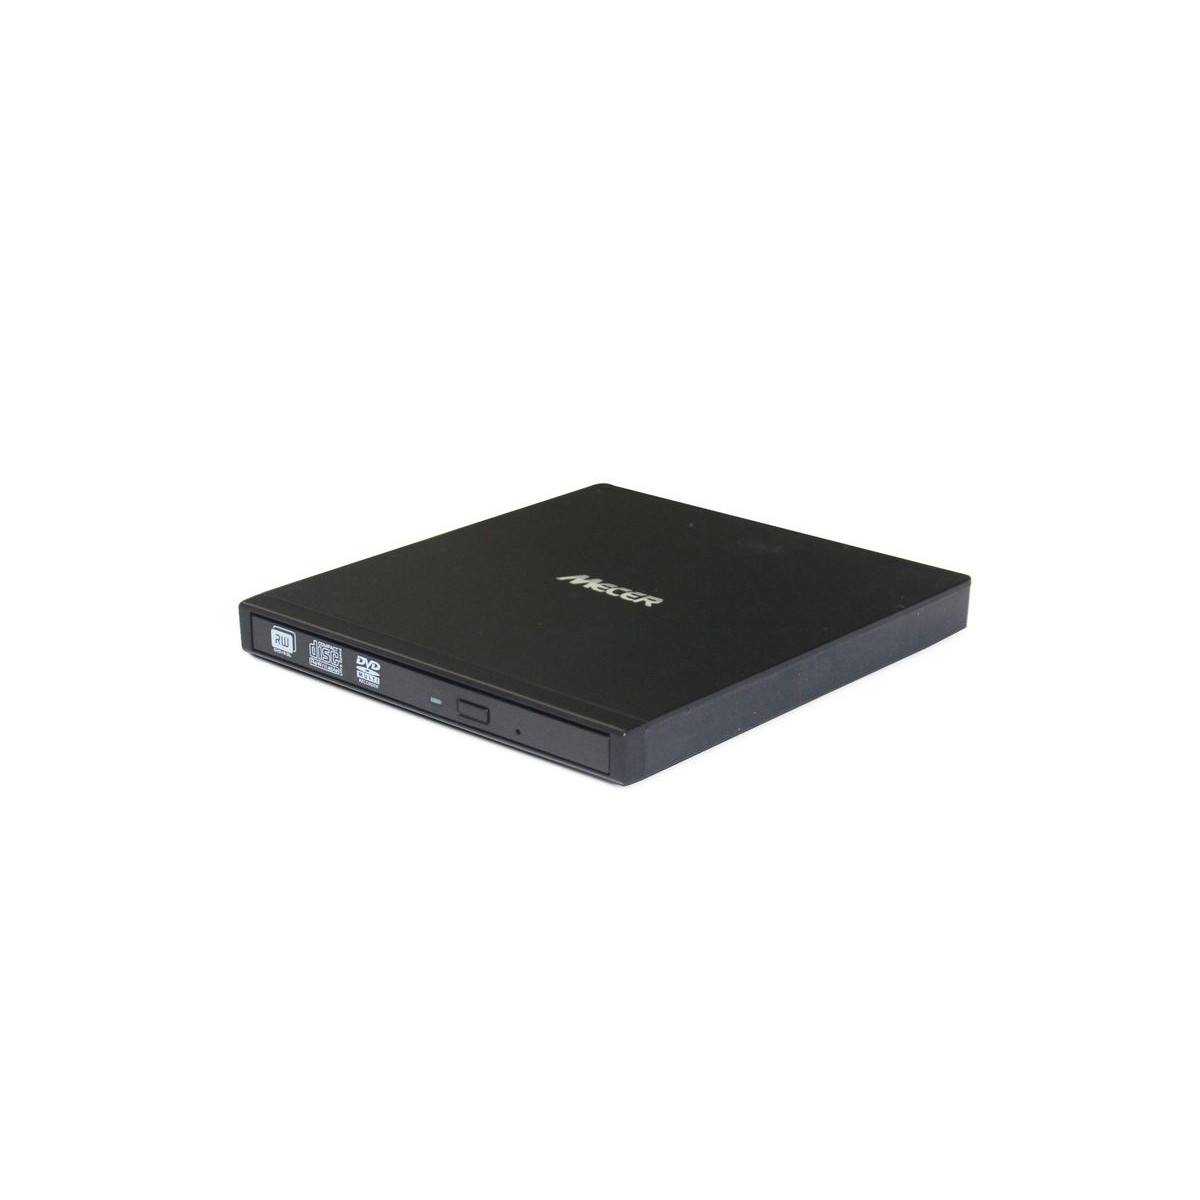 Mecer USB2.0 Slim-Type DVDRW Super Multi Drive